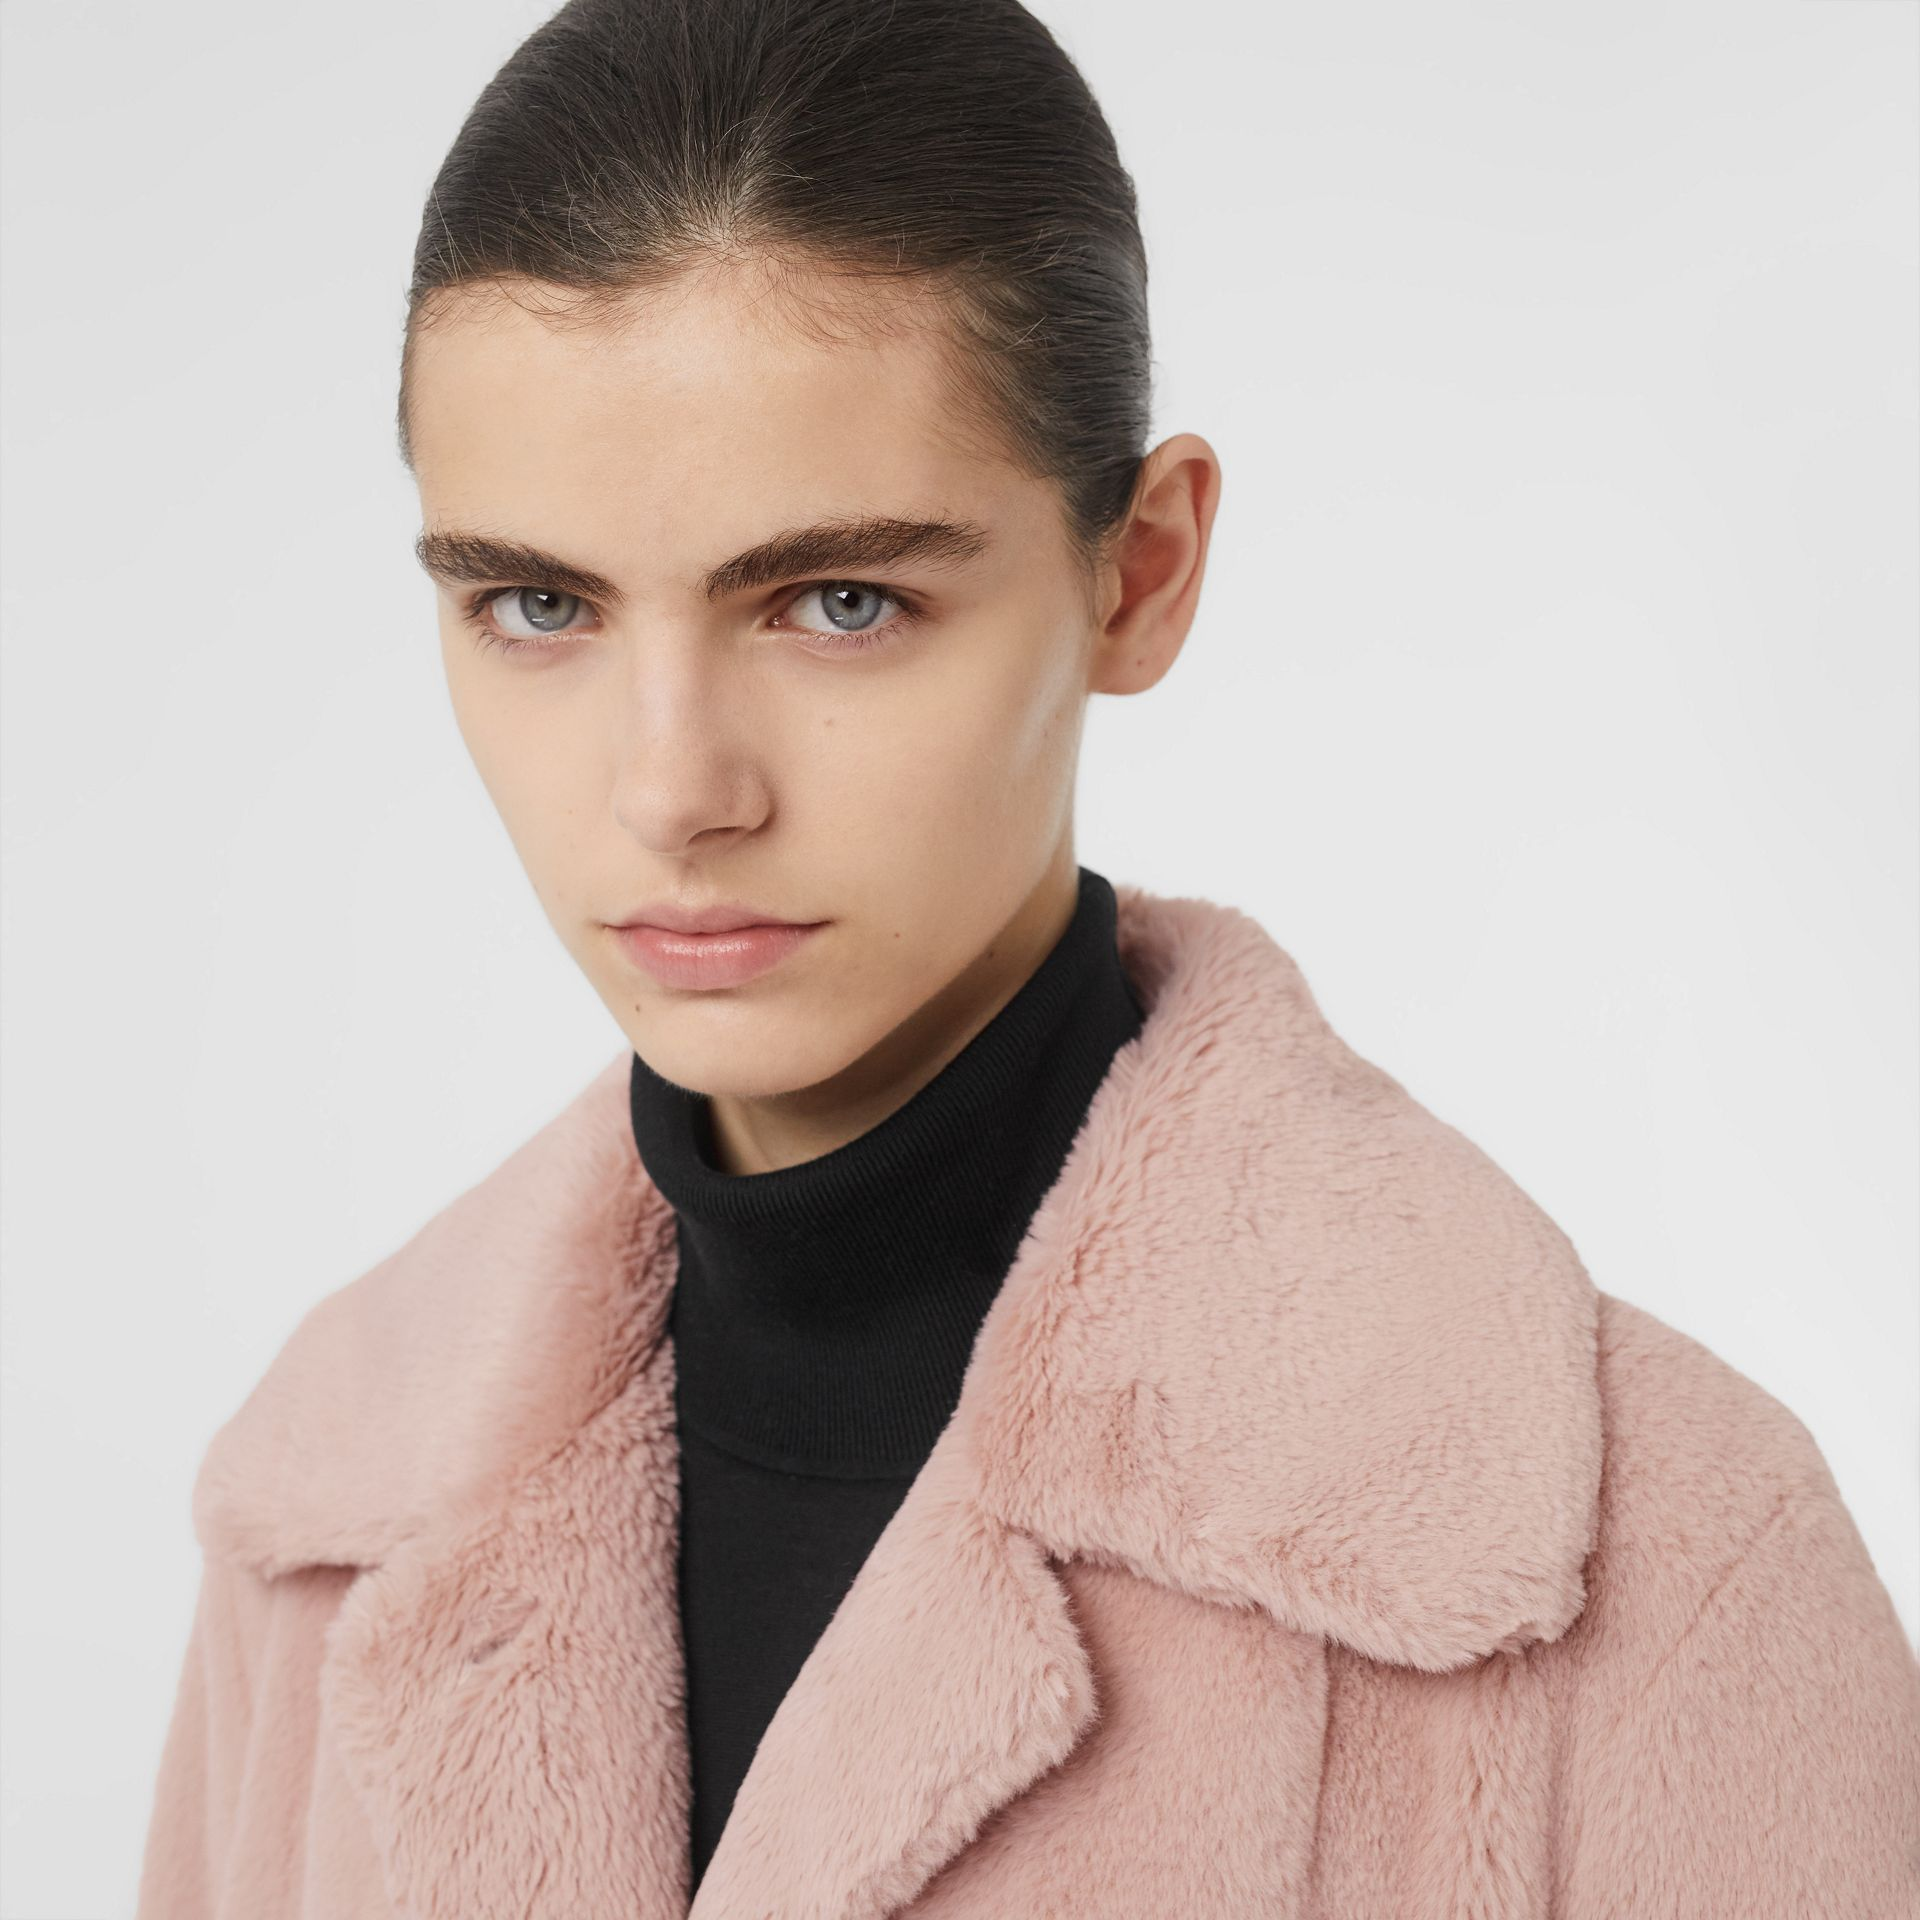 Manteau en fausse fourrure à boutonnage simple (Blush Pâle) - Femme | Burberry - photo de la galerie 1